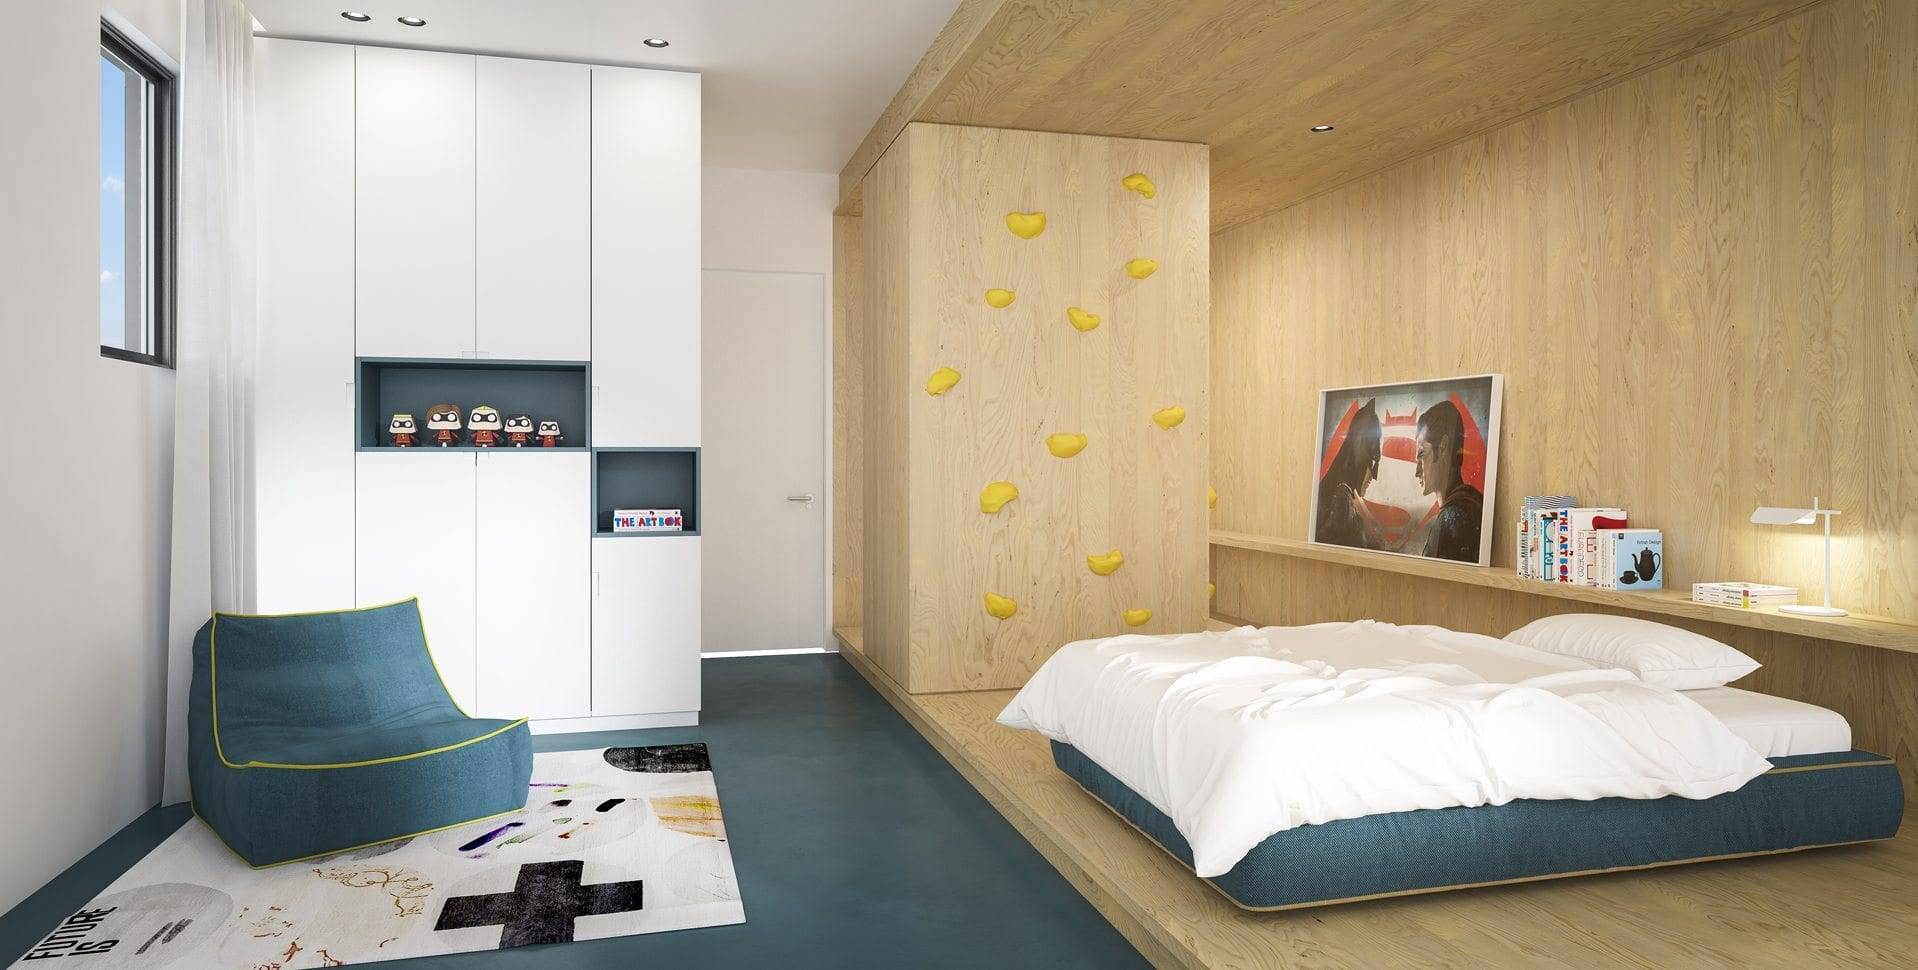 Maayan-Golan_Architectural-Visualization_ duplex-interior-visualization_kids-bedroom_design-hazak-studio_01